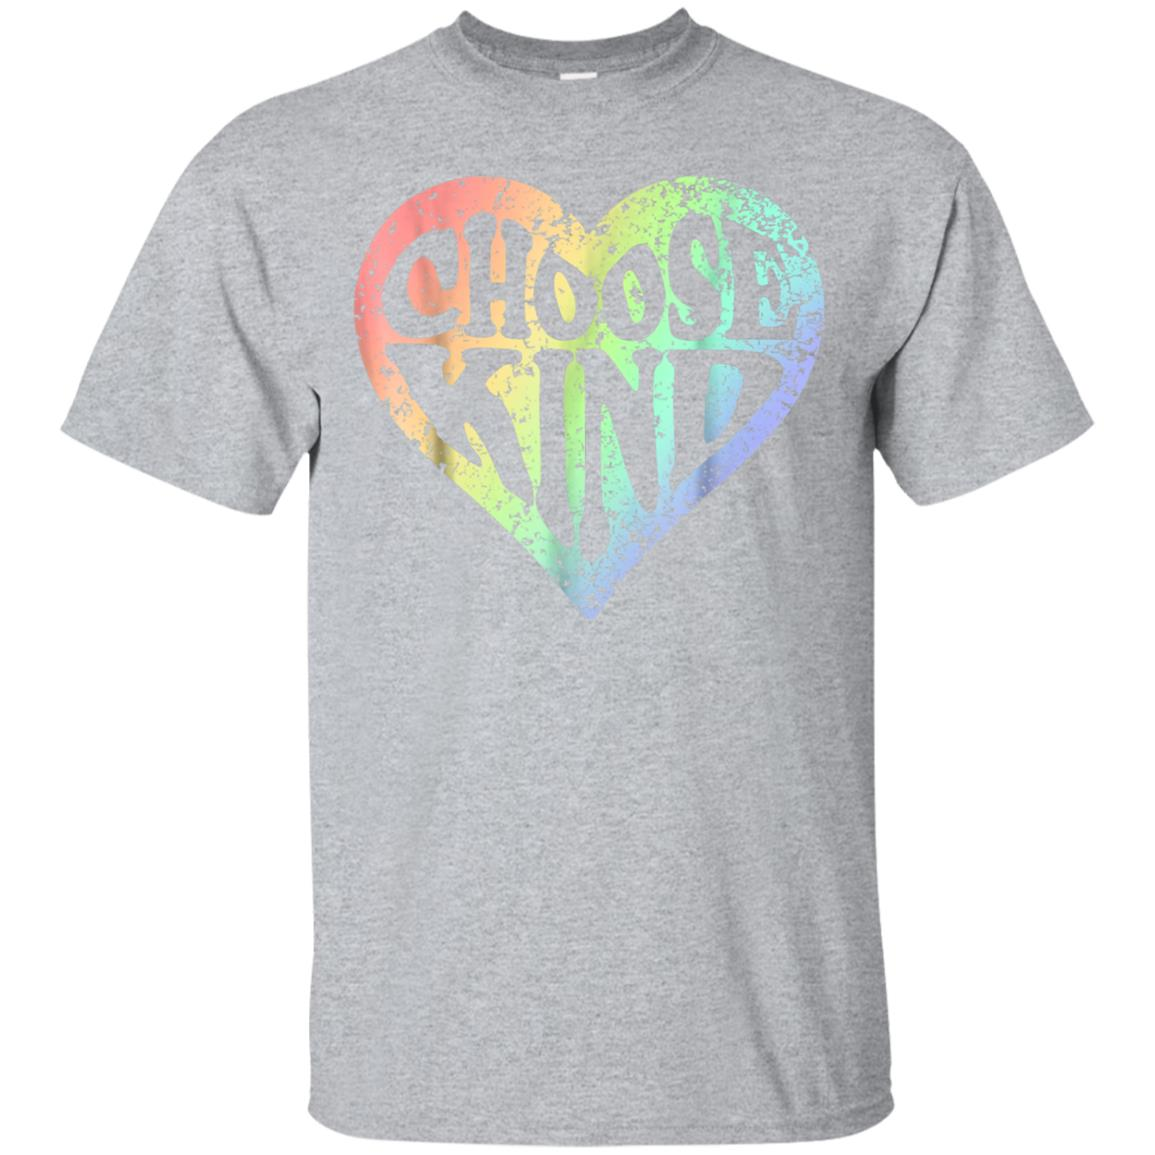 Rainbow Heart Choose Kind Shirt Anti Bully Women Men Kids 99promocode